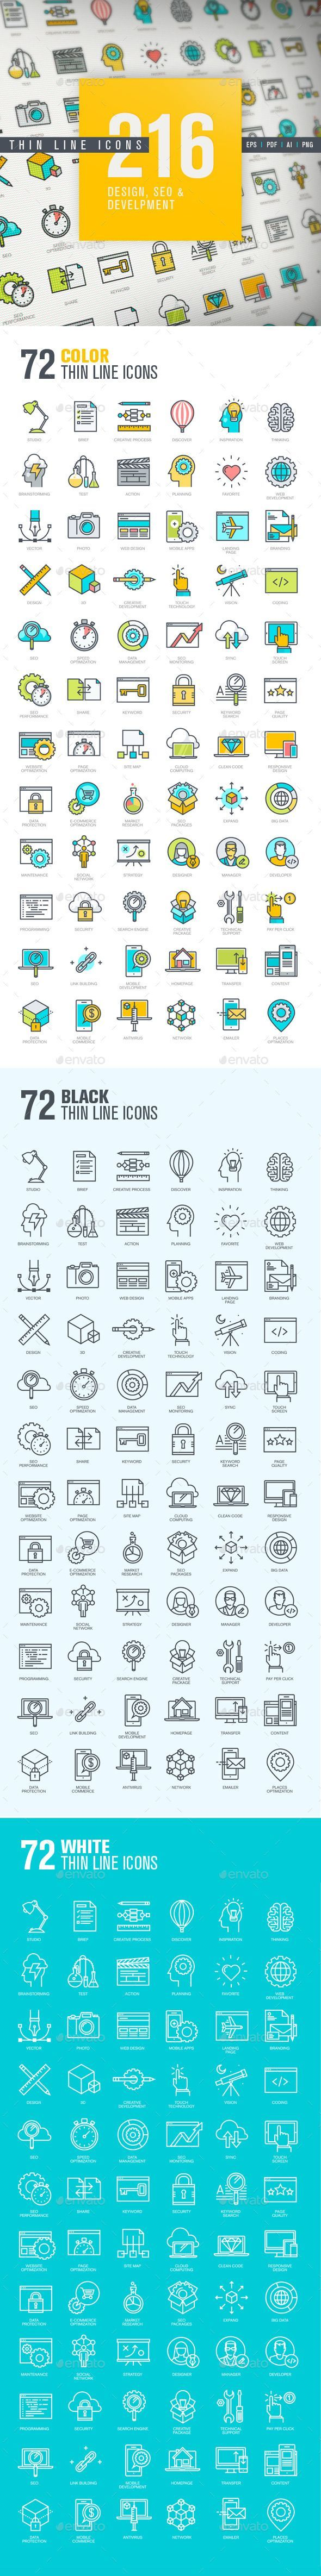 Business infographic : Thin Line Icons for Design, SEO and Development #design Download: graphicriver.n